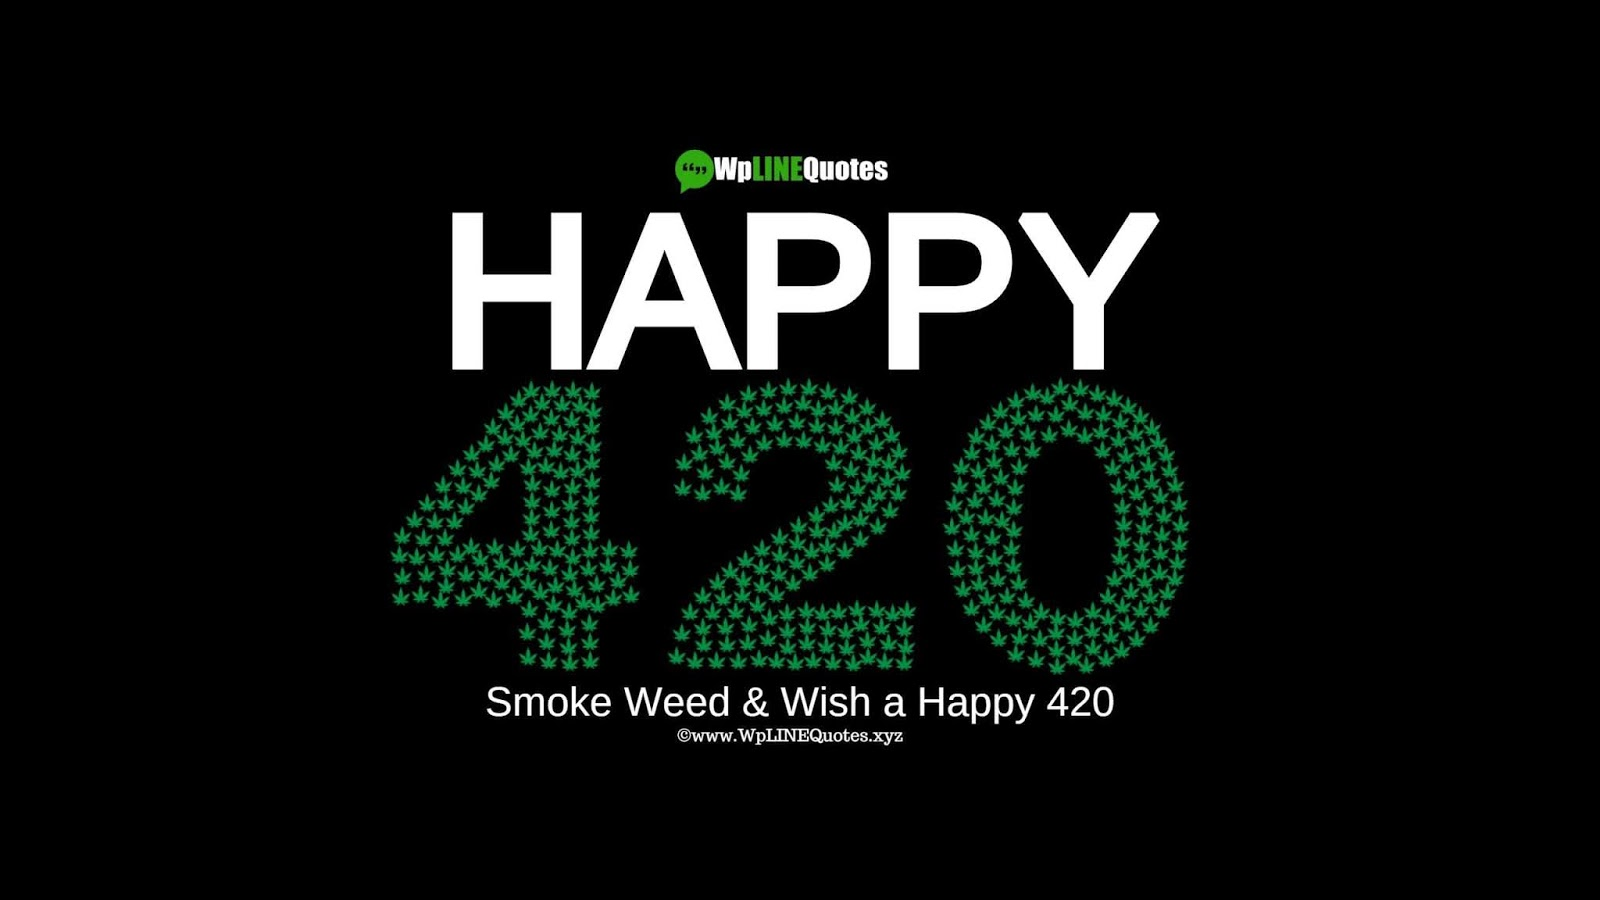 420 Weed Day Quotes, Meaning, History, Facts, Images, Pictures, Pics